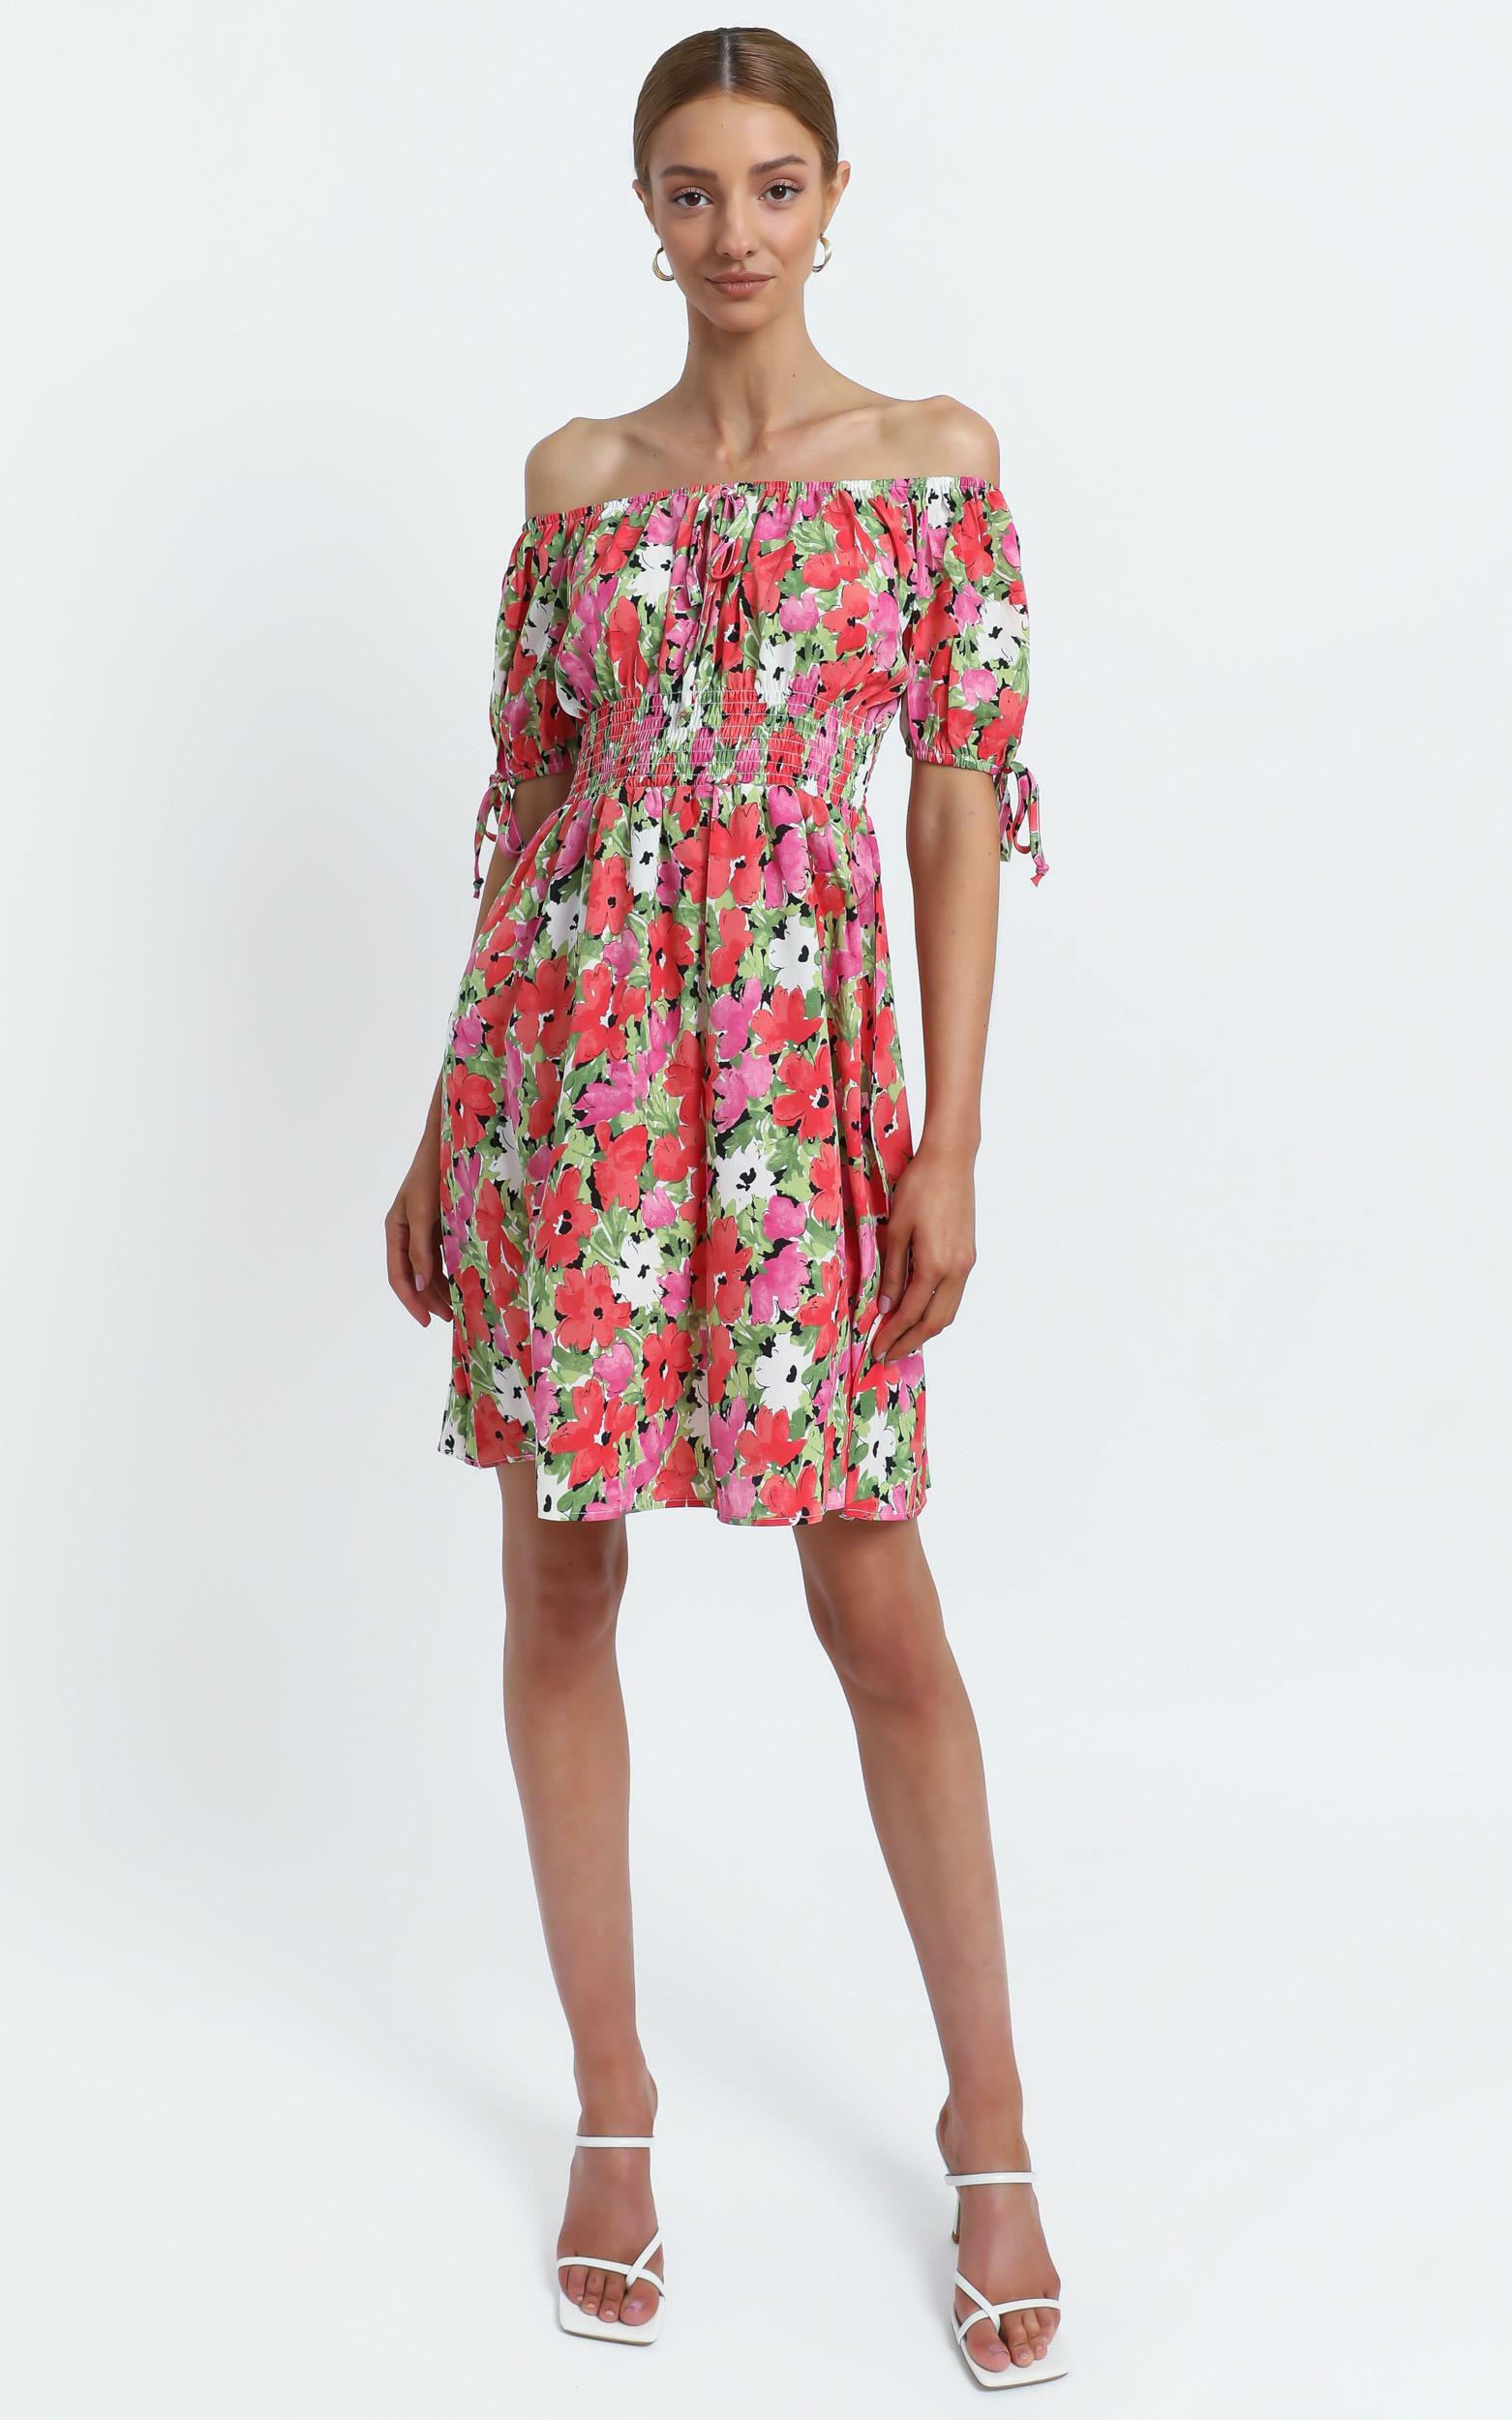 Octavia Dress in Pink Floral - 12 (L), Pink, hi-res image number null